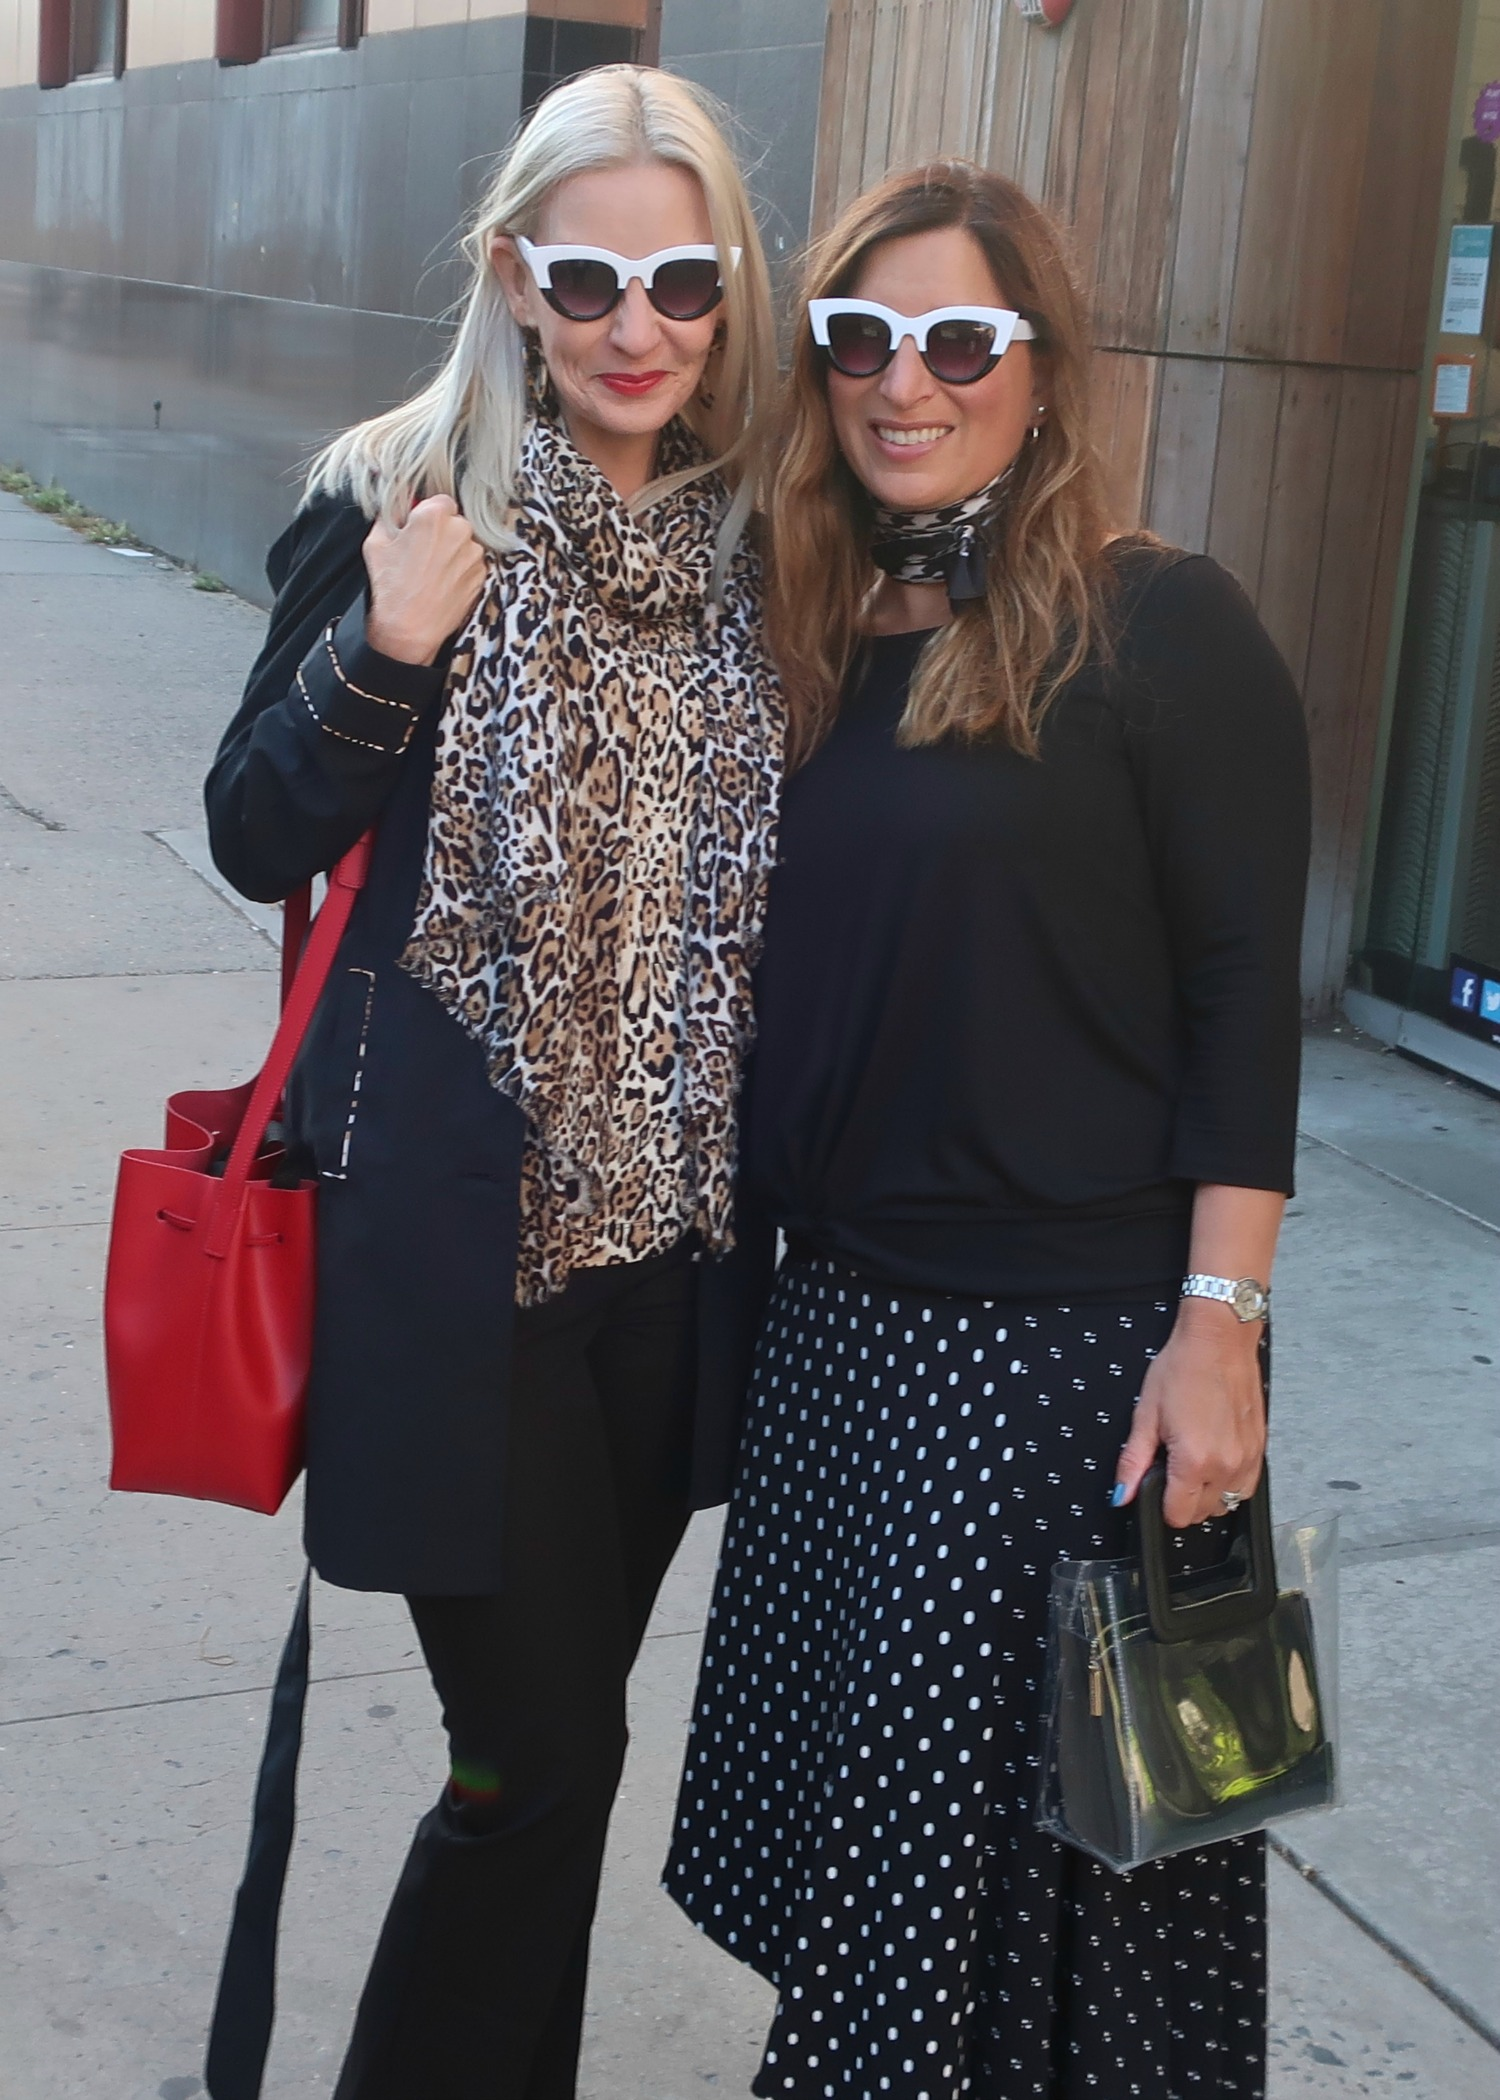 bay area bloggers over 40 at NYFW